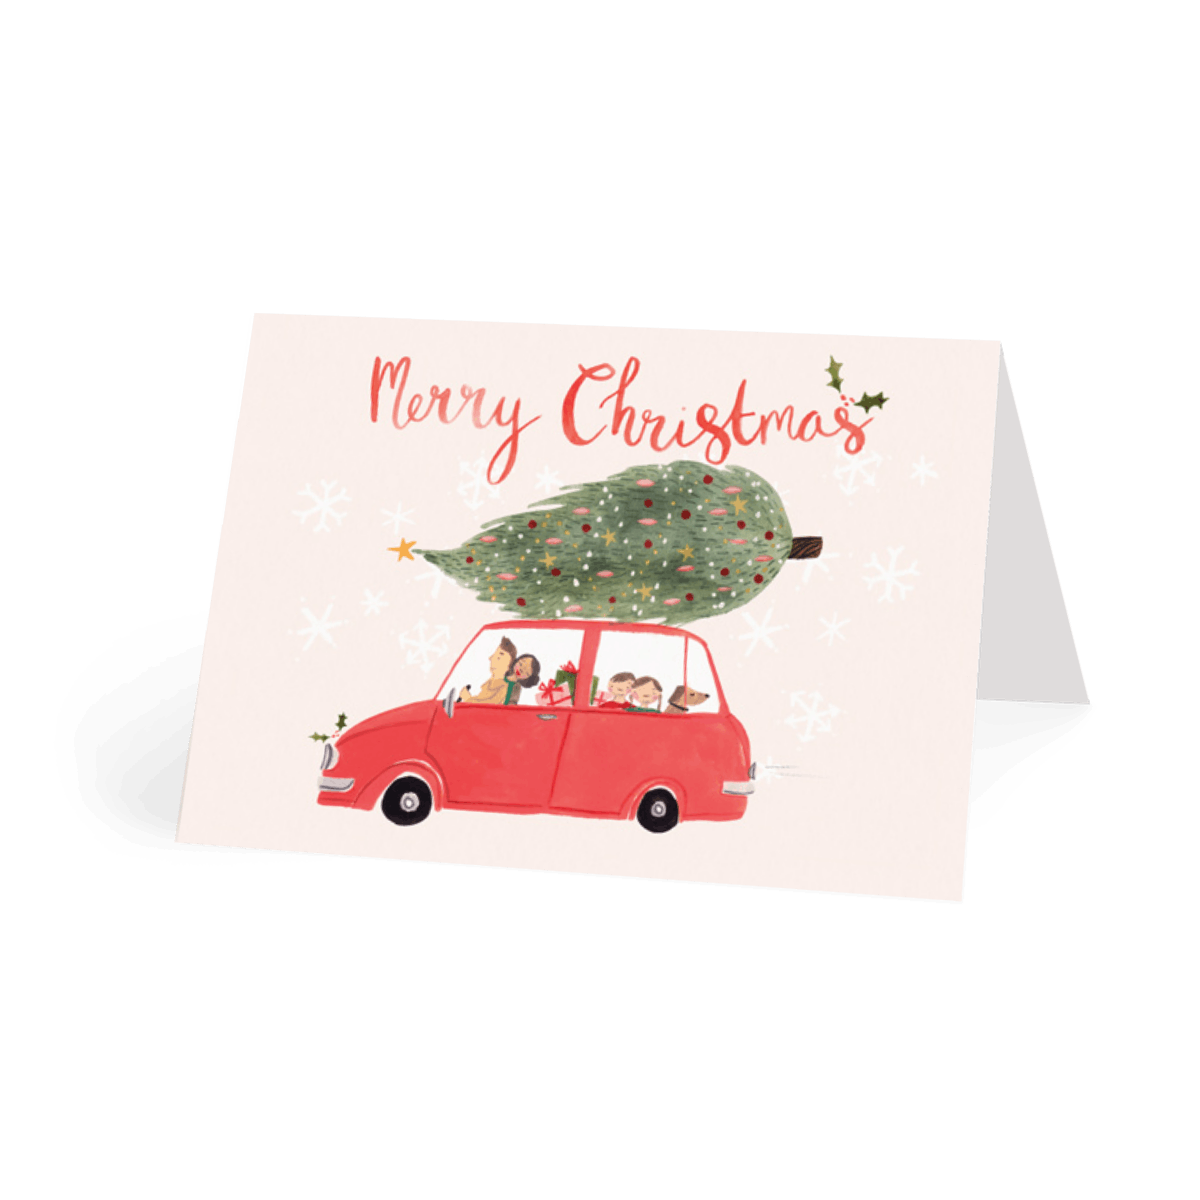 Https%3a%2f%2fwww.papier.com%2fproduct image%2f91113%2f14%2fdriving home for christmas 22781 front 1570183830.png?ixlib=rb 1.1